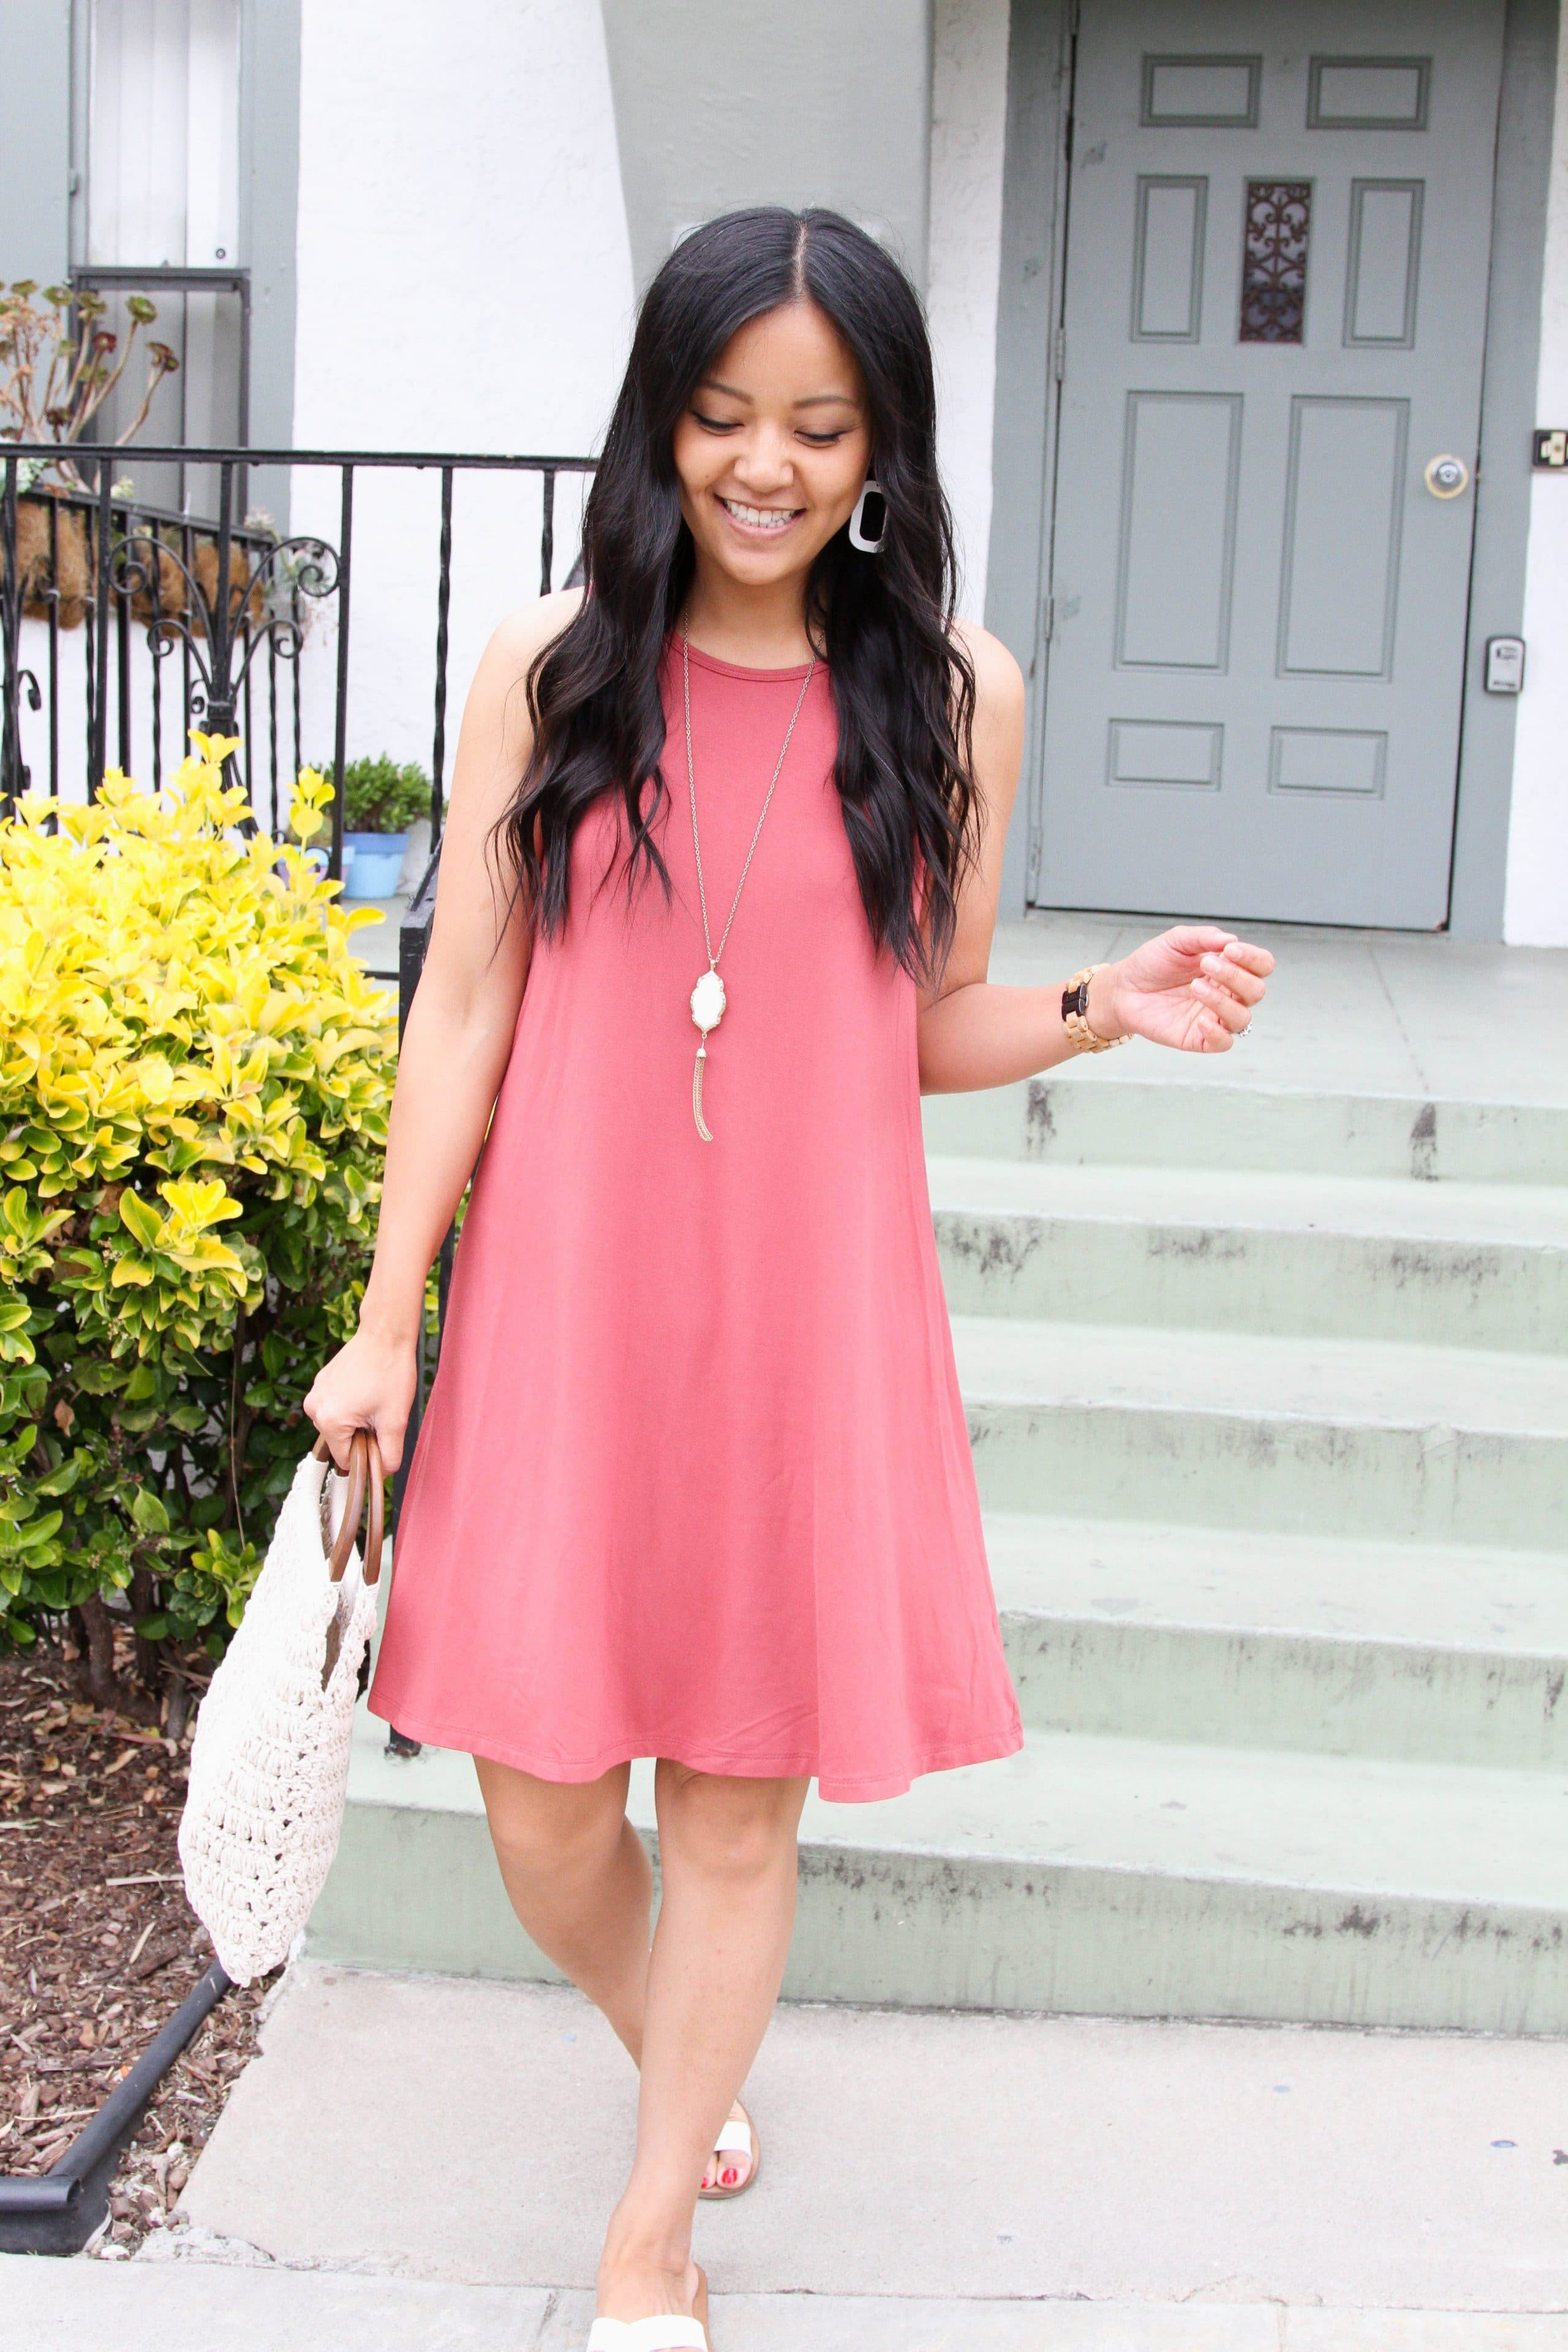 dusty pink swing dress + white sandals + macrame handbag +long pendant necklace